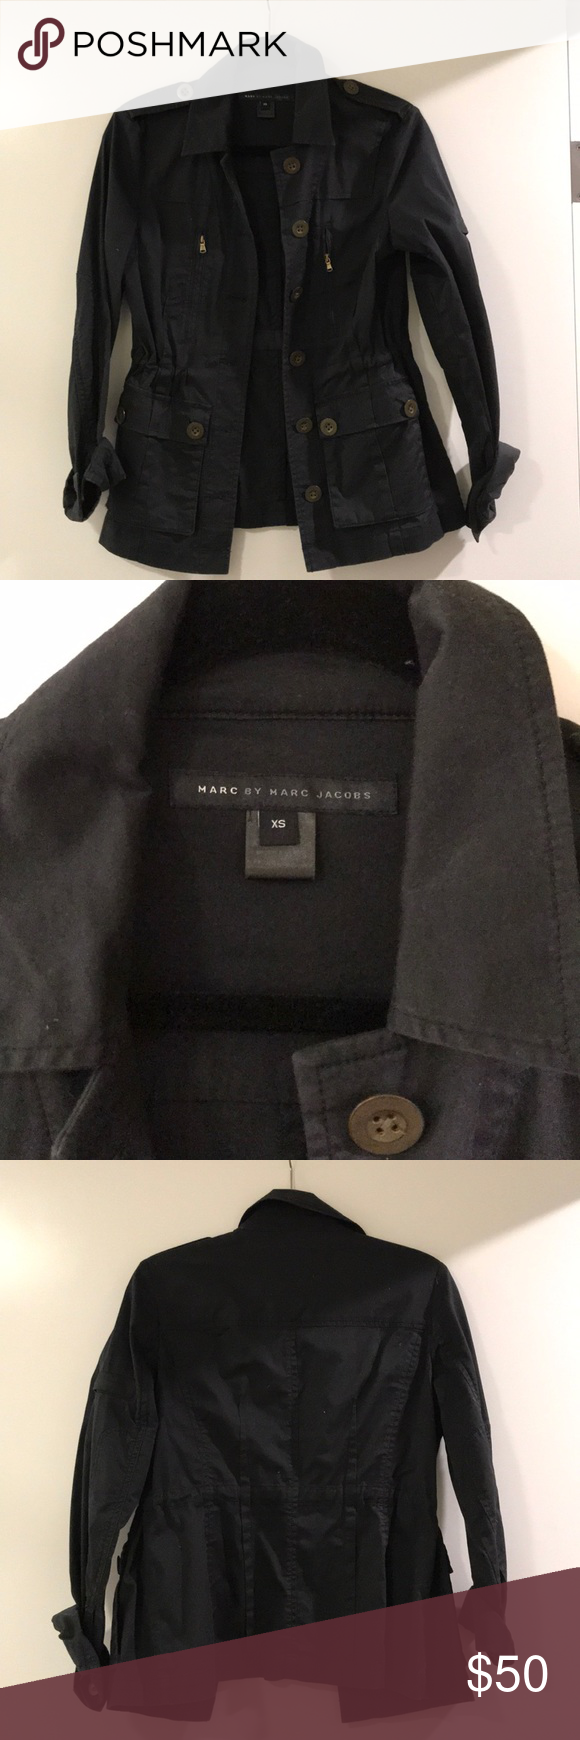 Marc by Marc Jacobs field jacket Dark blue field jacket from Marc by Marc Jacobs. In great condition and only worn twice. Marc By Marc Jacobs Jackets & Coats Utility Jackets